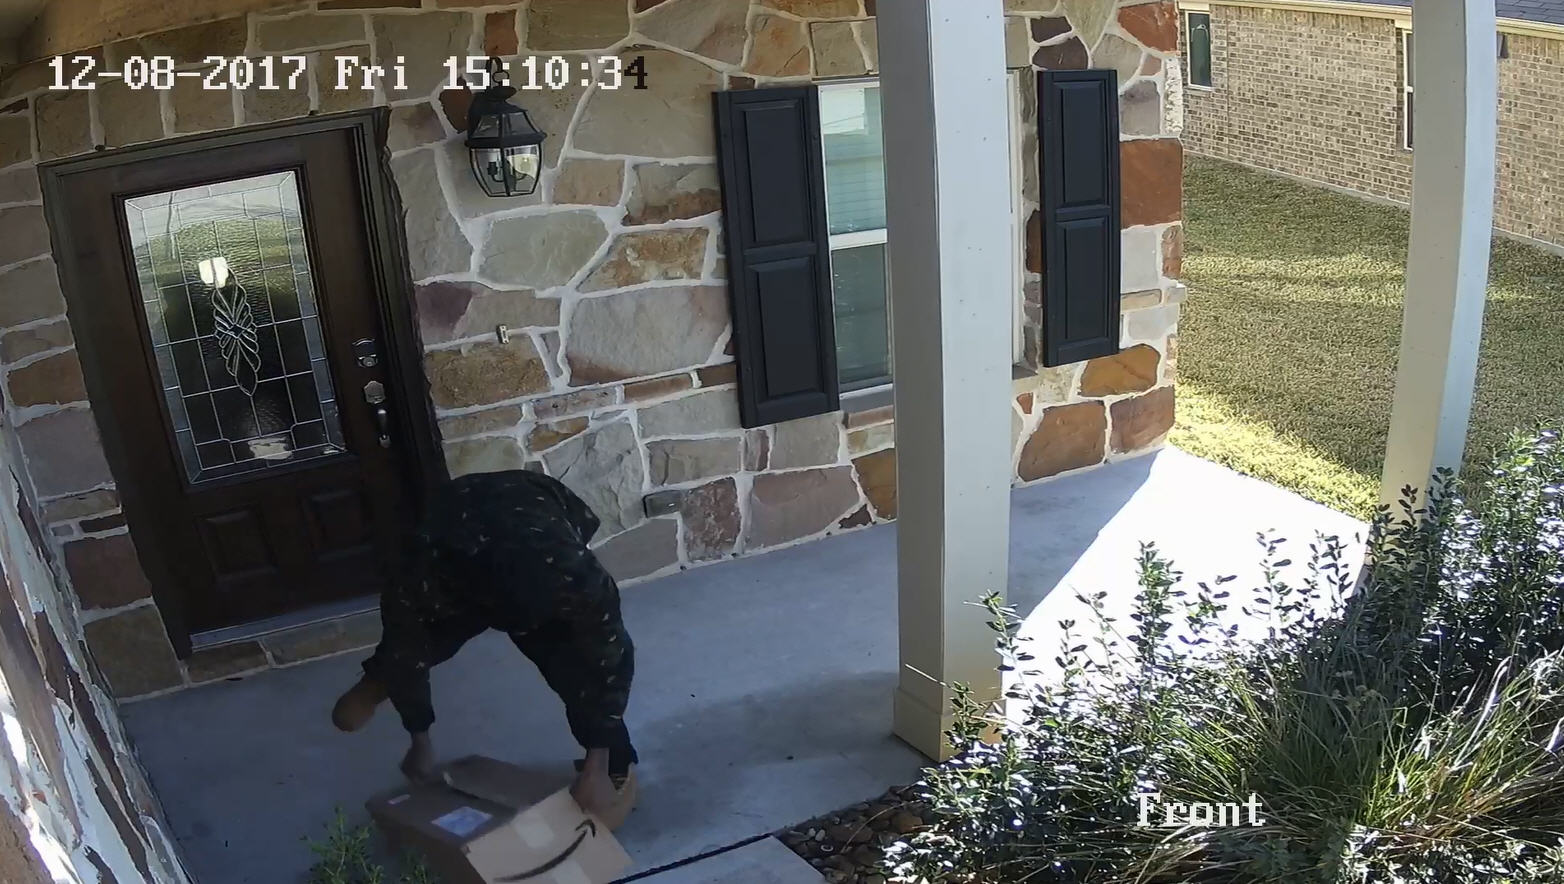 Houston thief caught on video struggling to steal heavy package from front of home